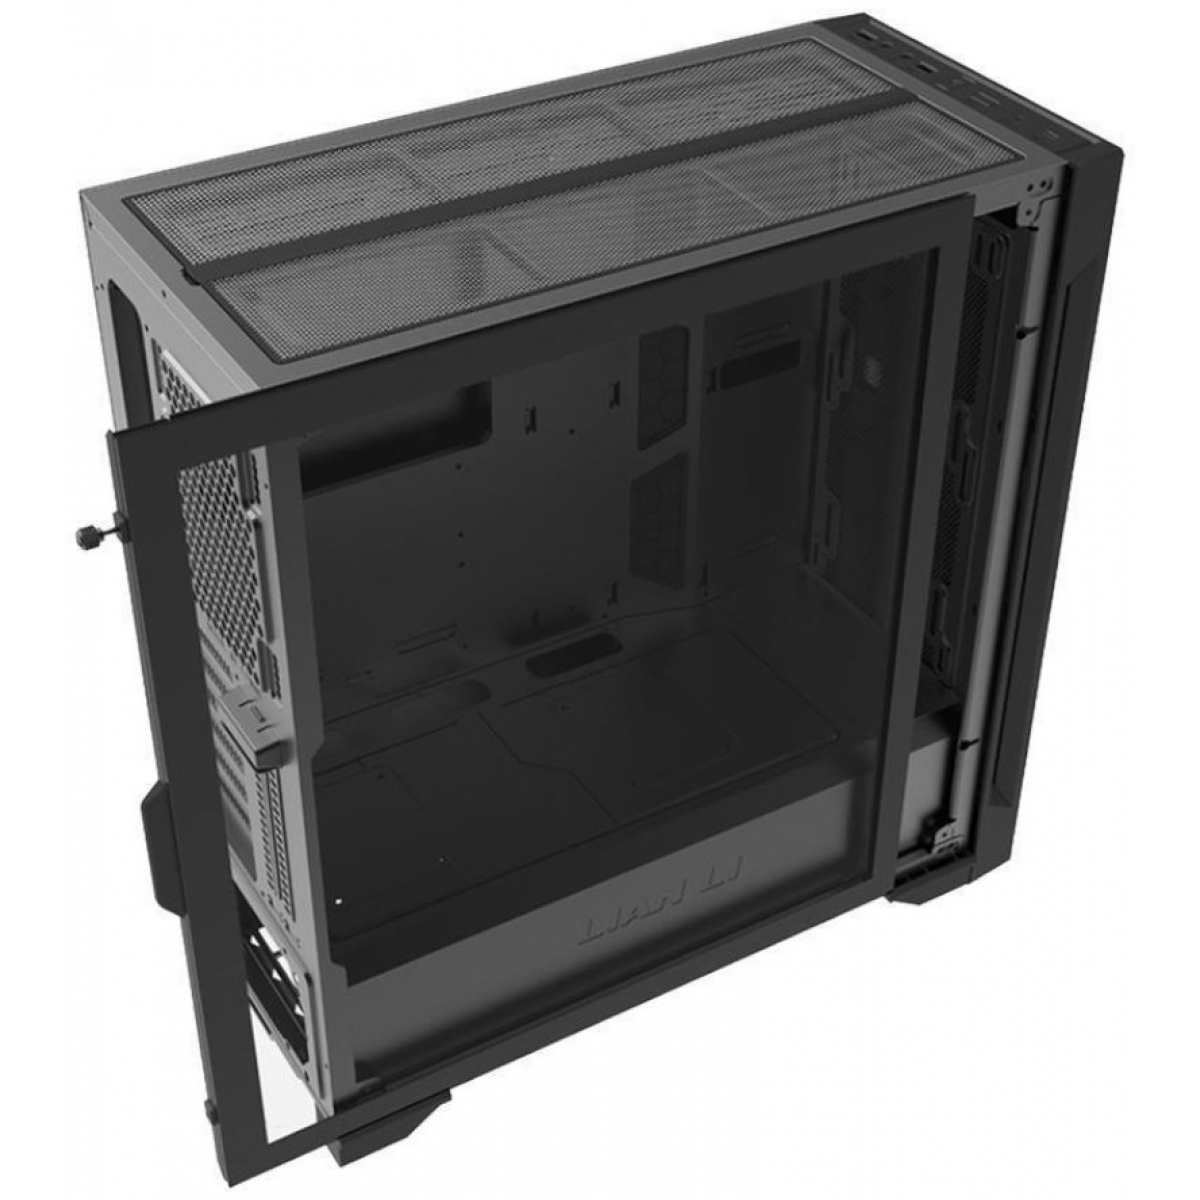 Gabinete Gamer Lian Li Lancool One Digital, Mid Tower, Vidro Temperado, Black, Sem Fonte, Sem Fan